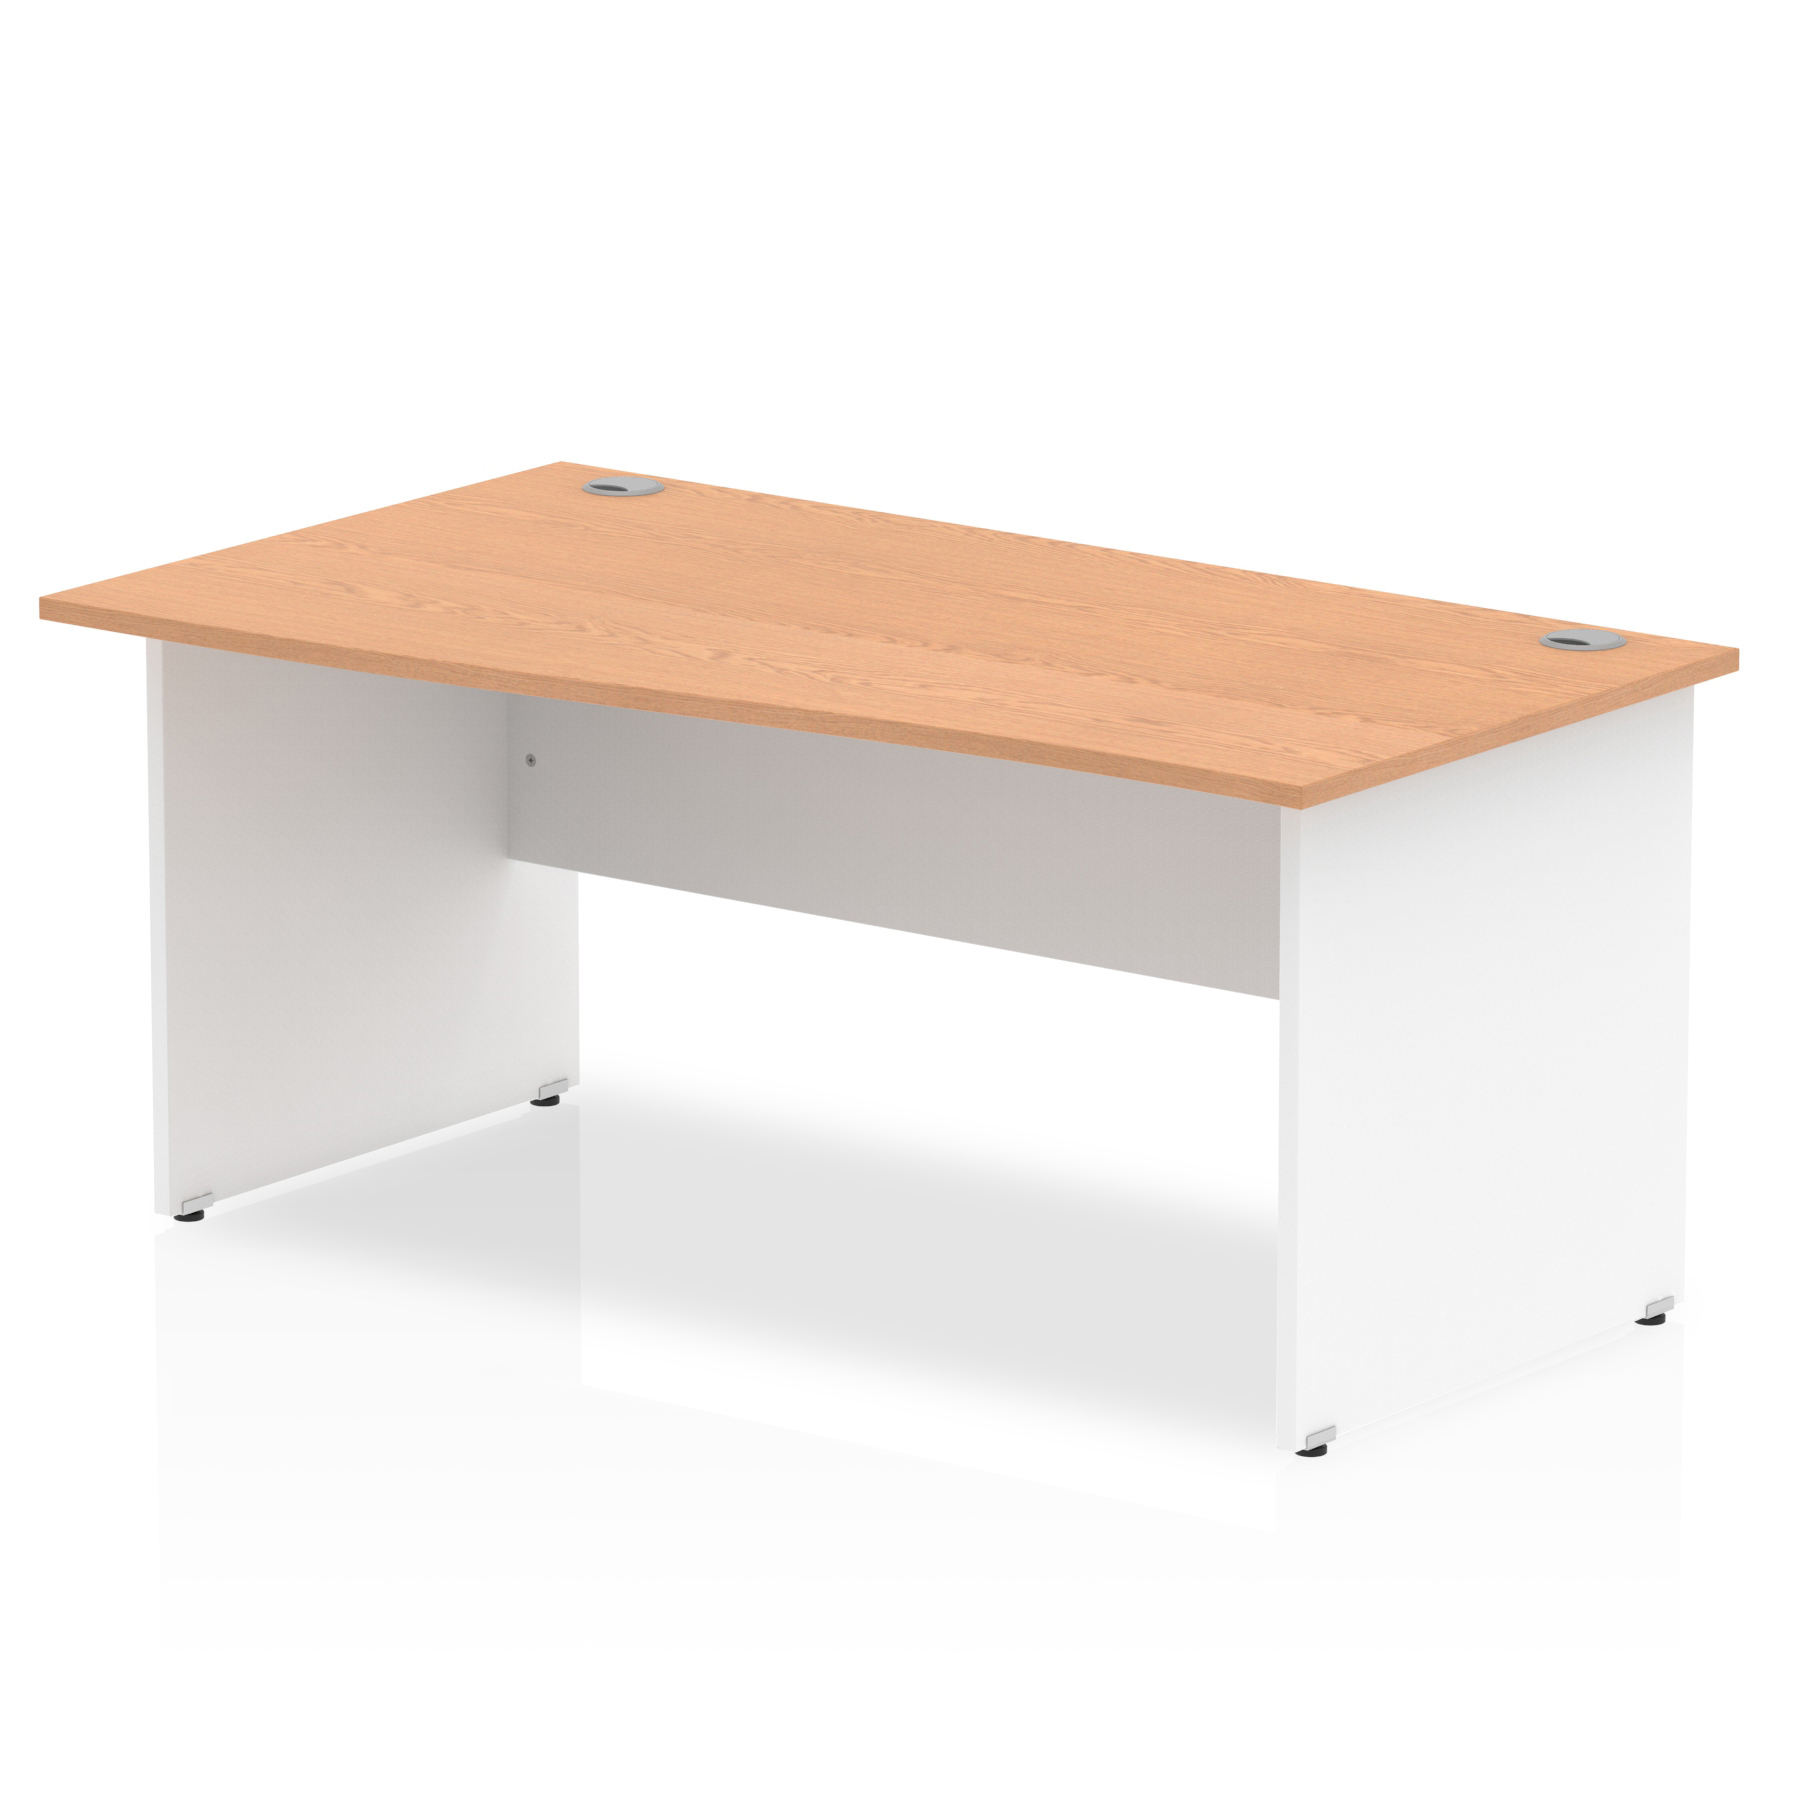 Trexus Desk Wave Left Hand Panel End 1600x800mm Oak Top White Panels Ref TT000065